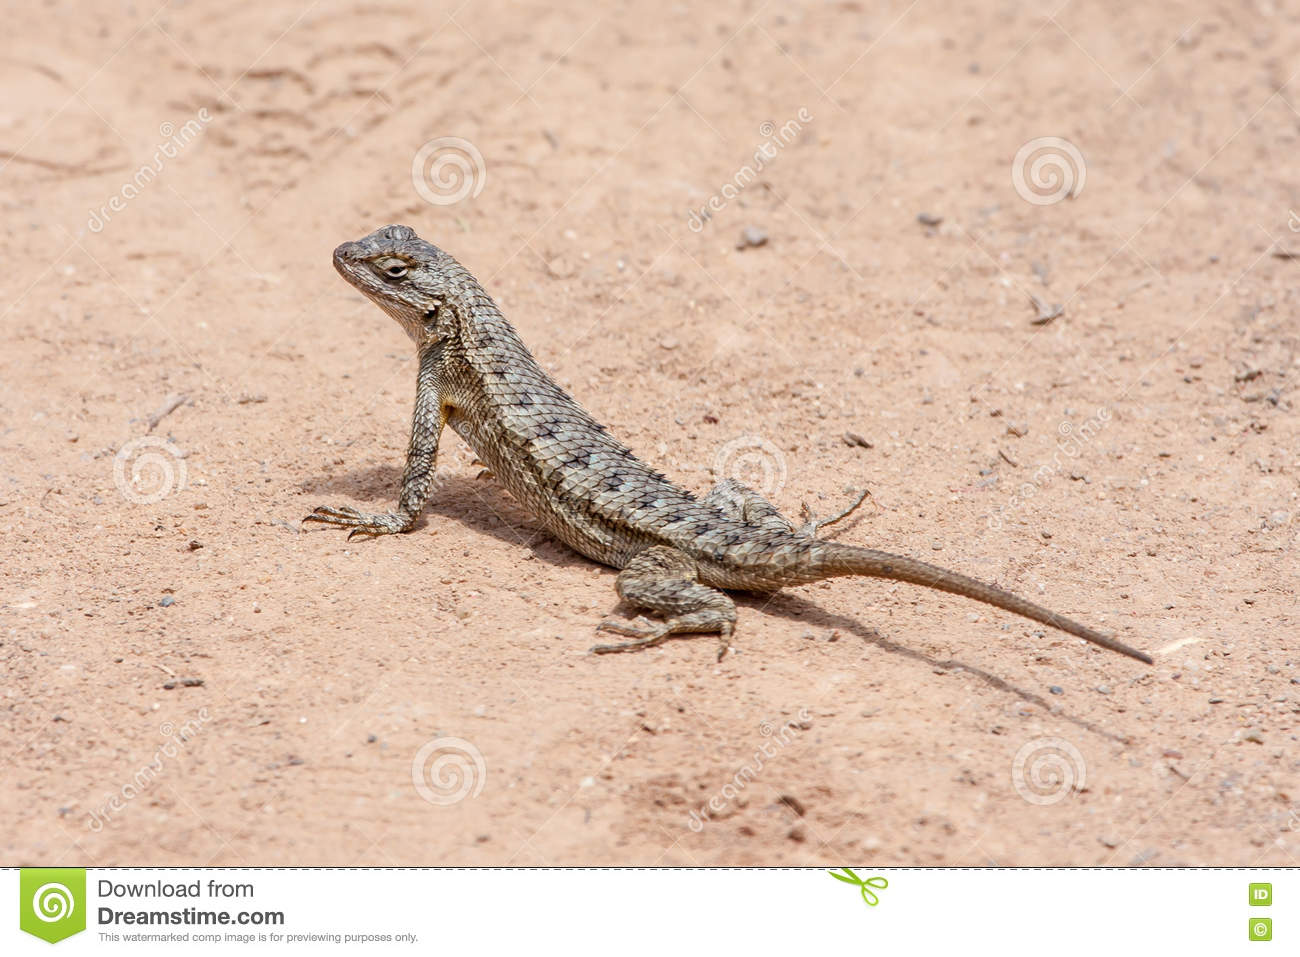 Western Fence Lizard clipart #13, Download drawings